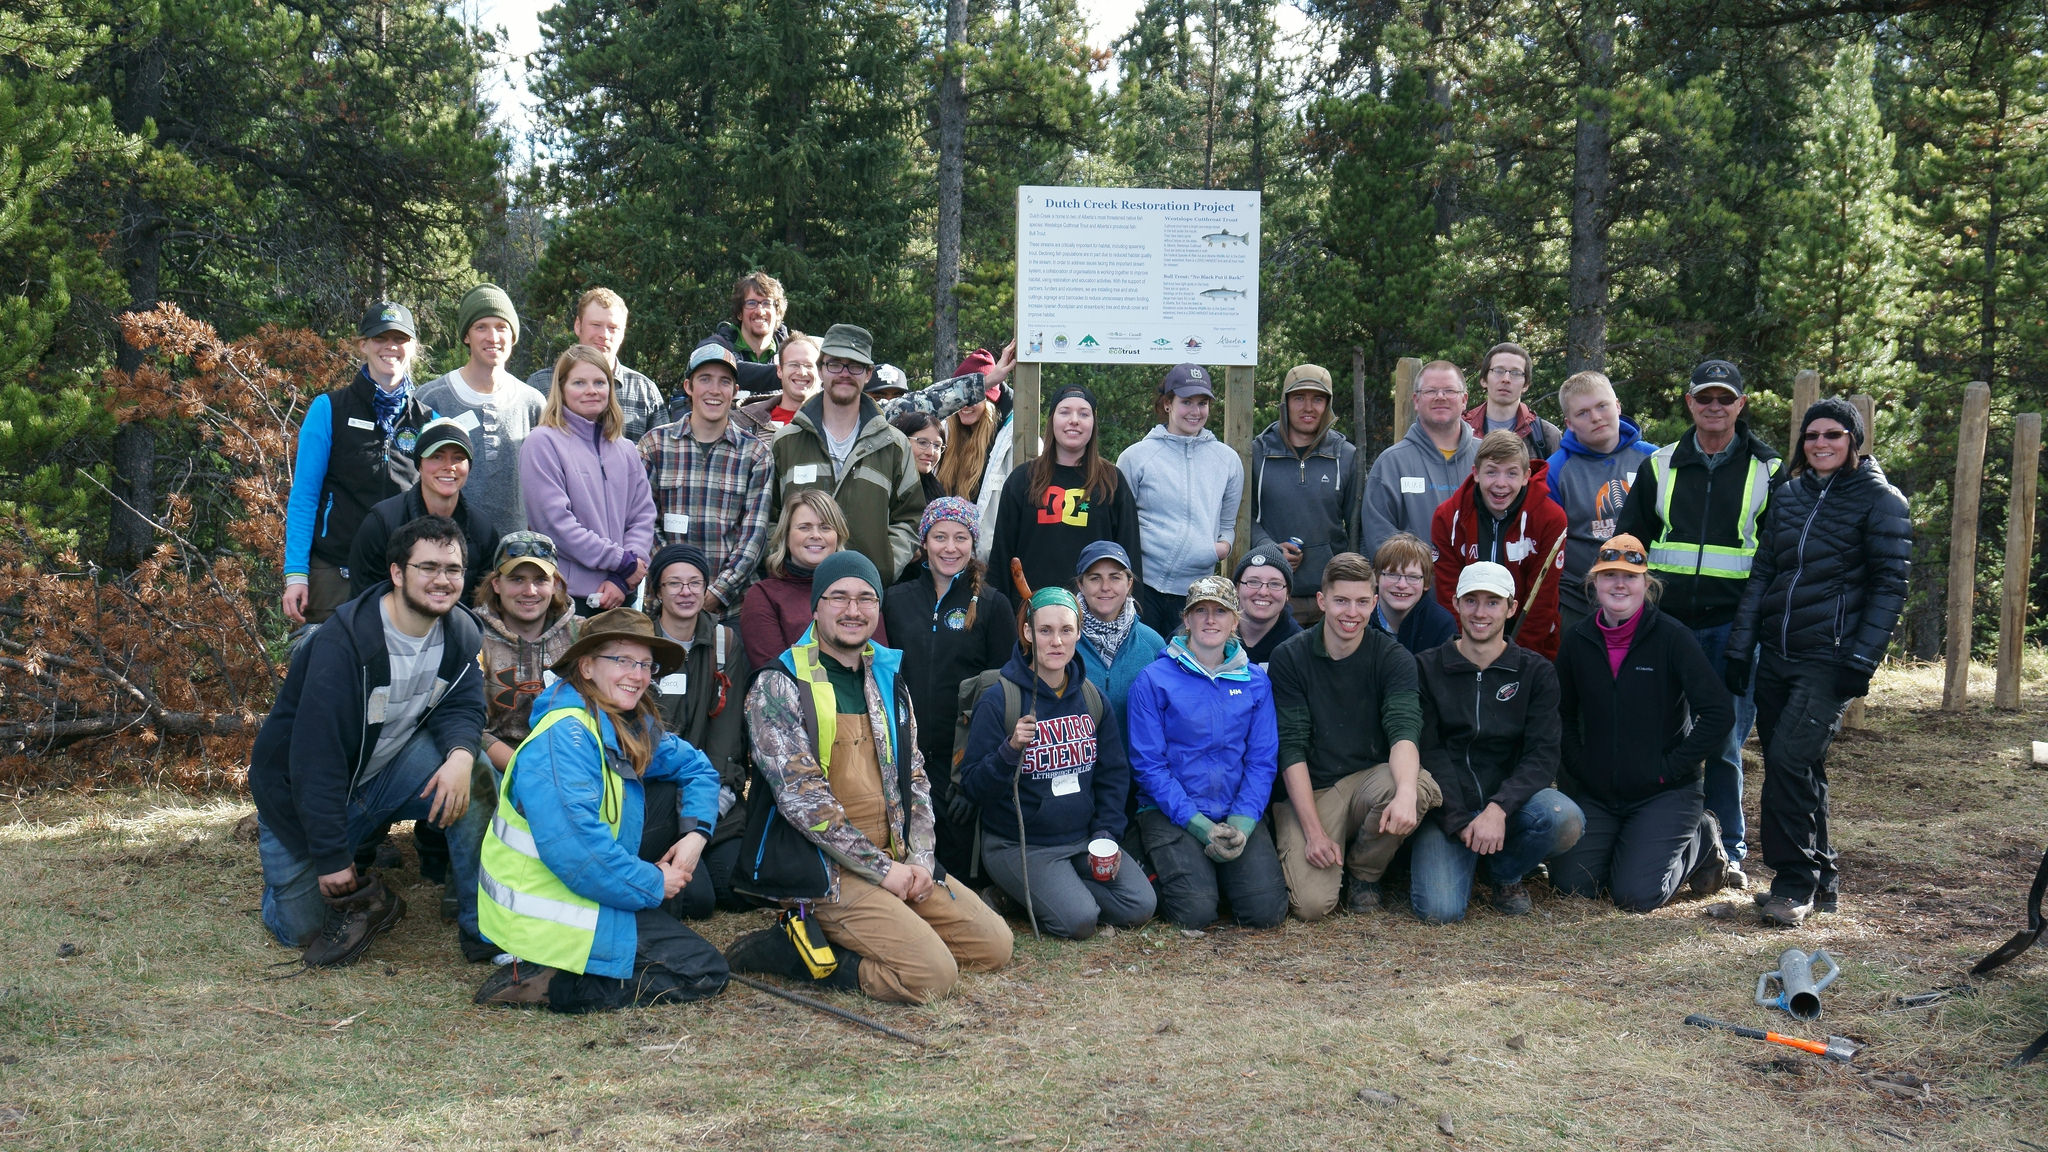 Joint OWC/Cows and Fish Restoration event in Dutch Creek, October 21, 2016